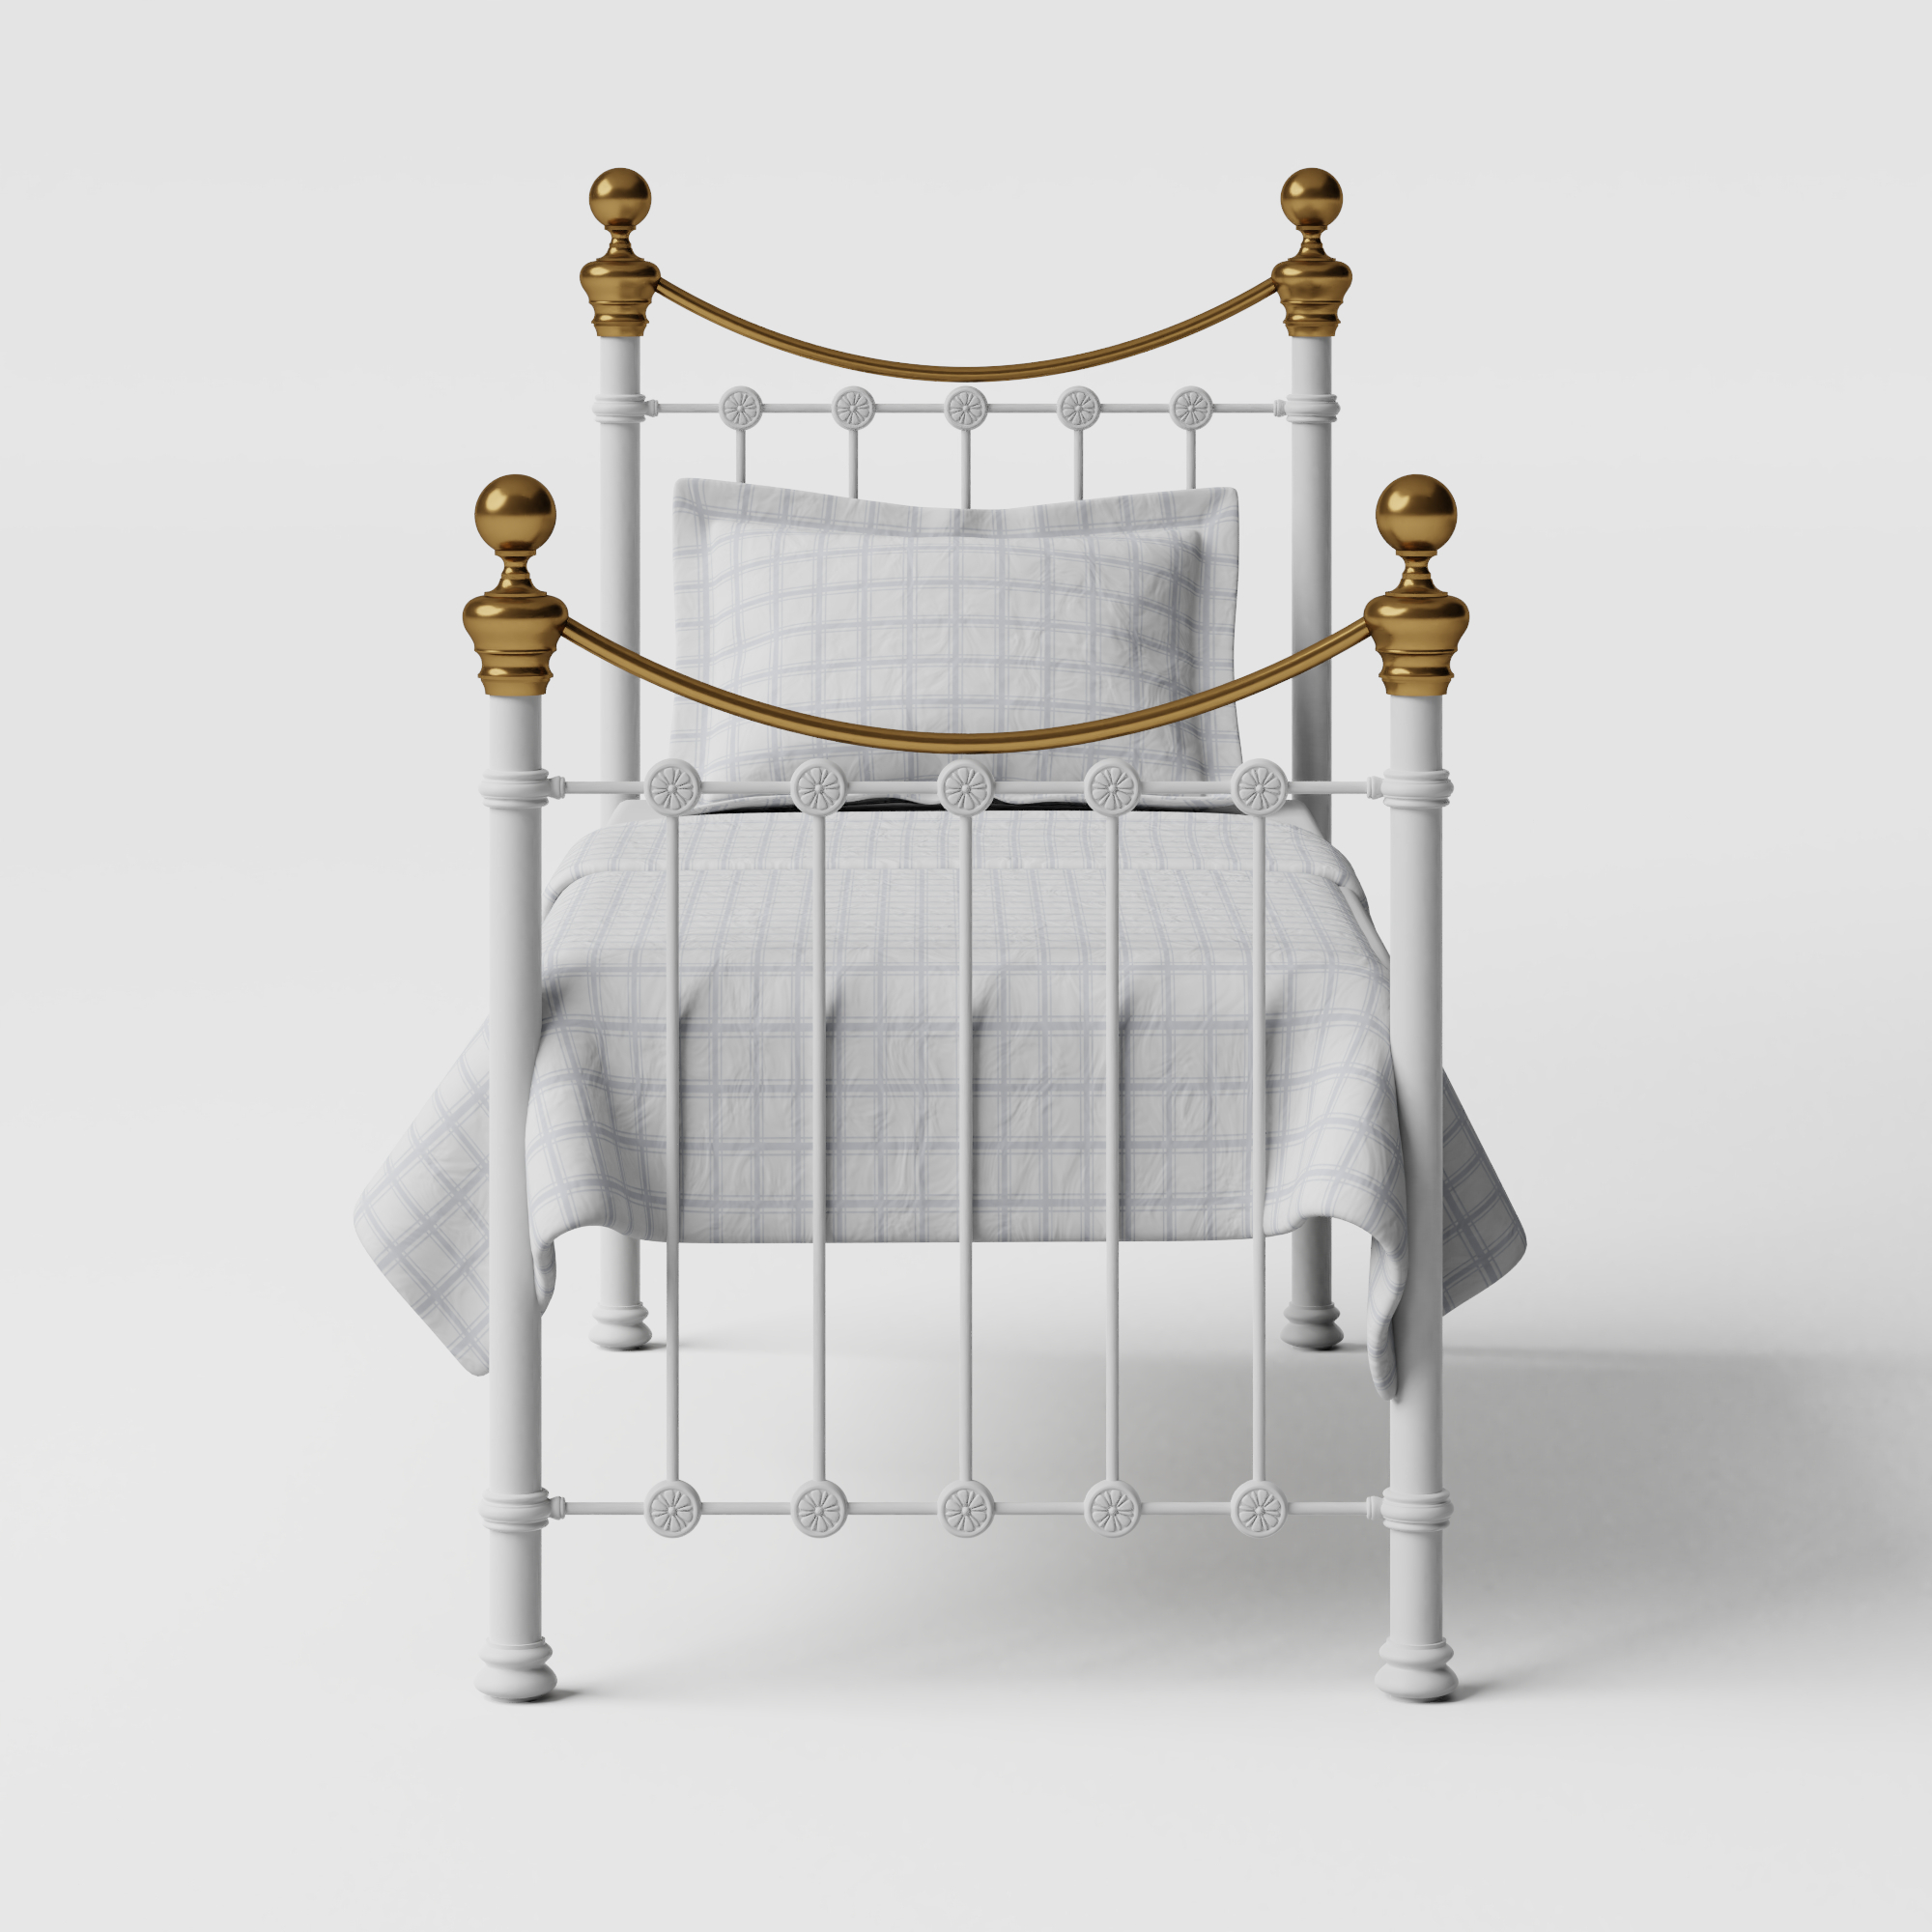 Selkirk iron/metal single bed in white